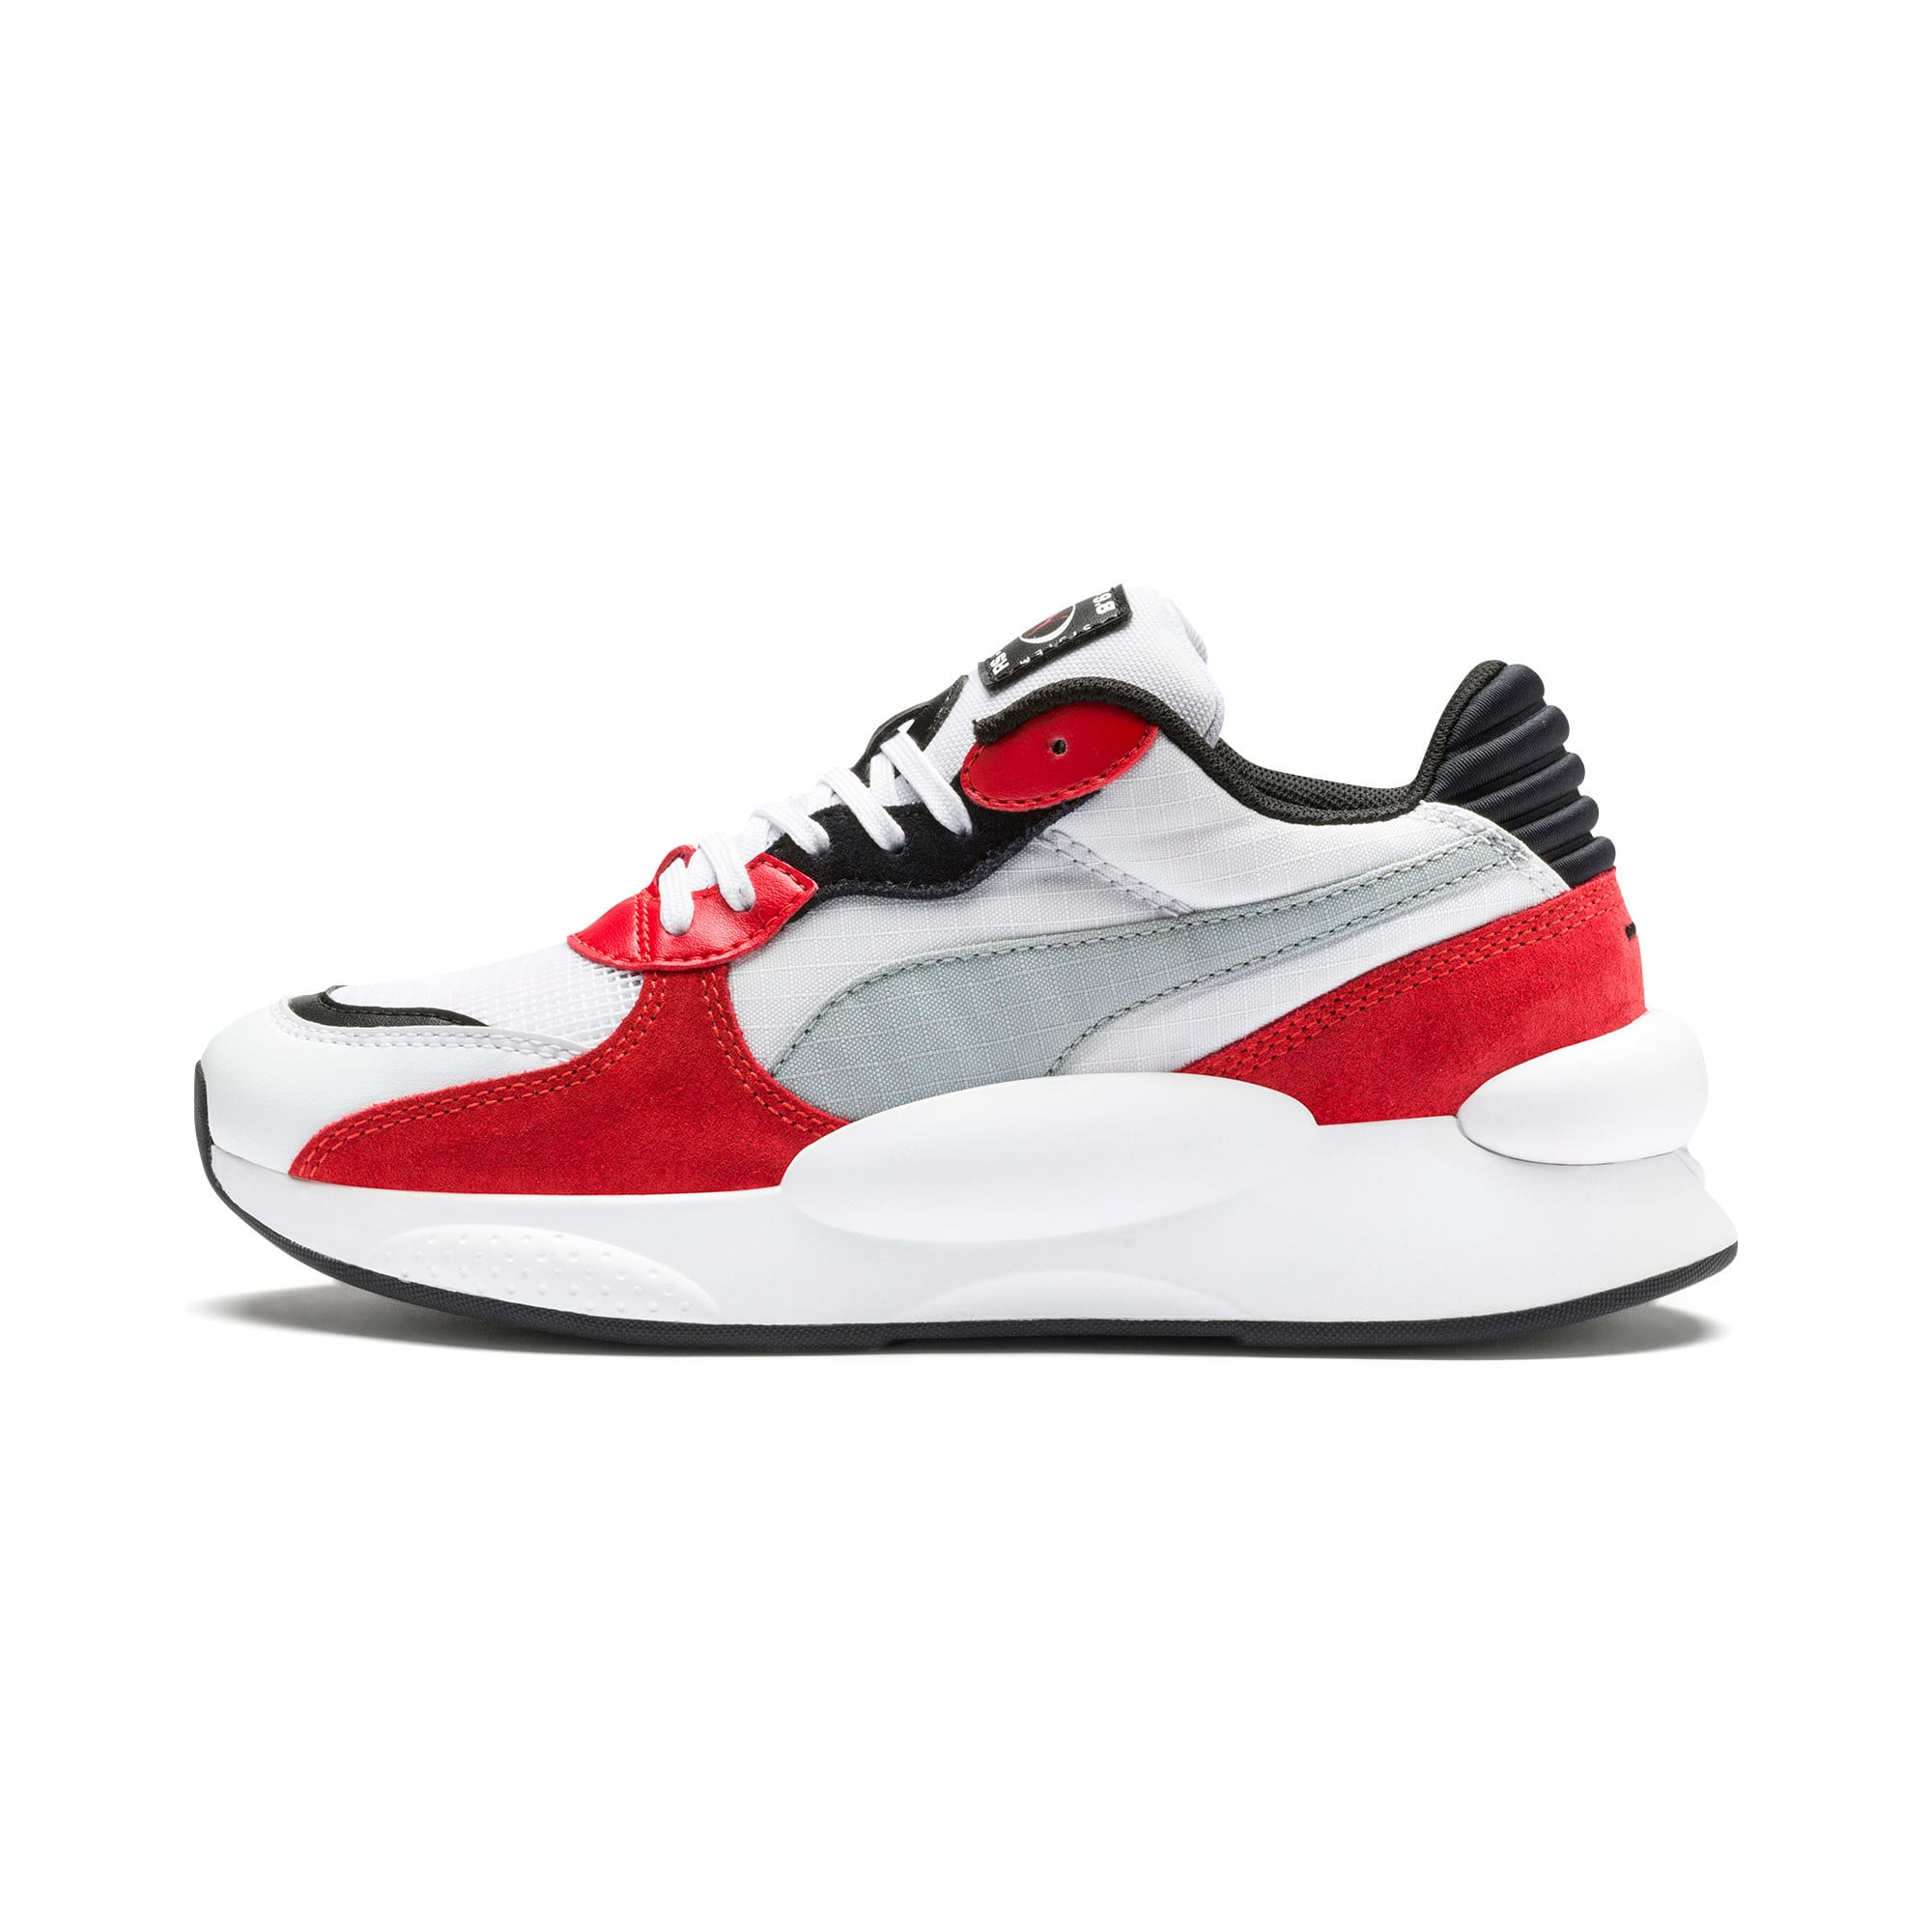 Thumbnail 1 of RS 9.8 Space Sneakers JR, Puma White-High Risk Red, medium